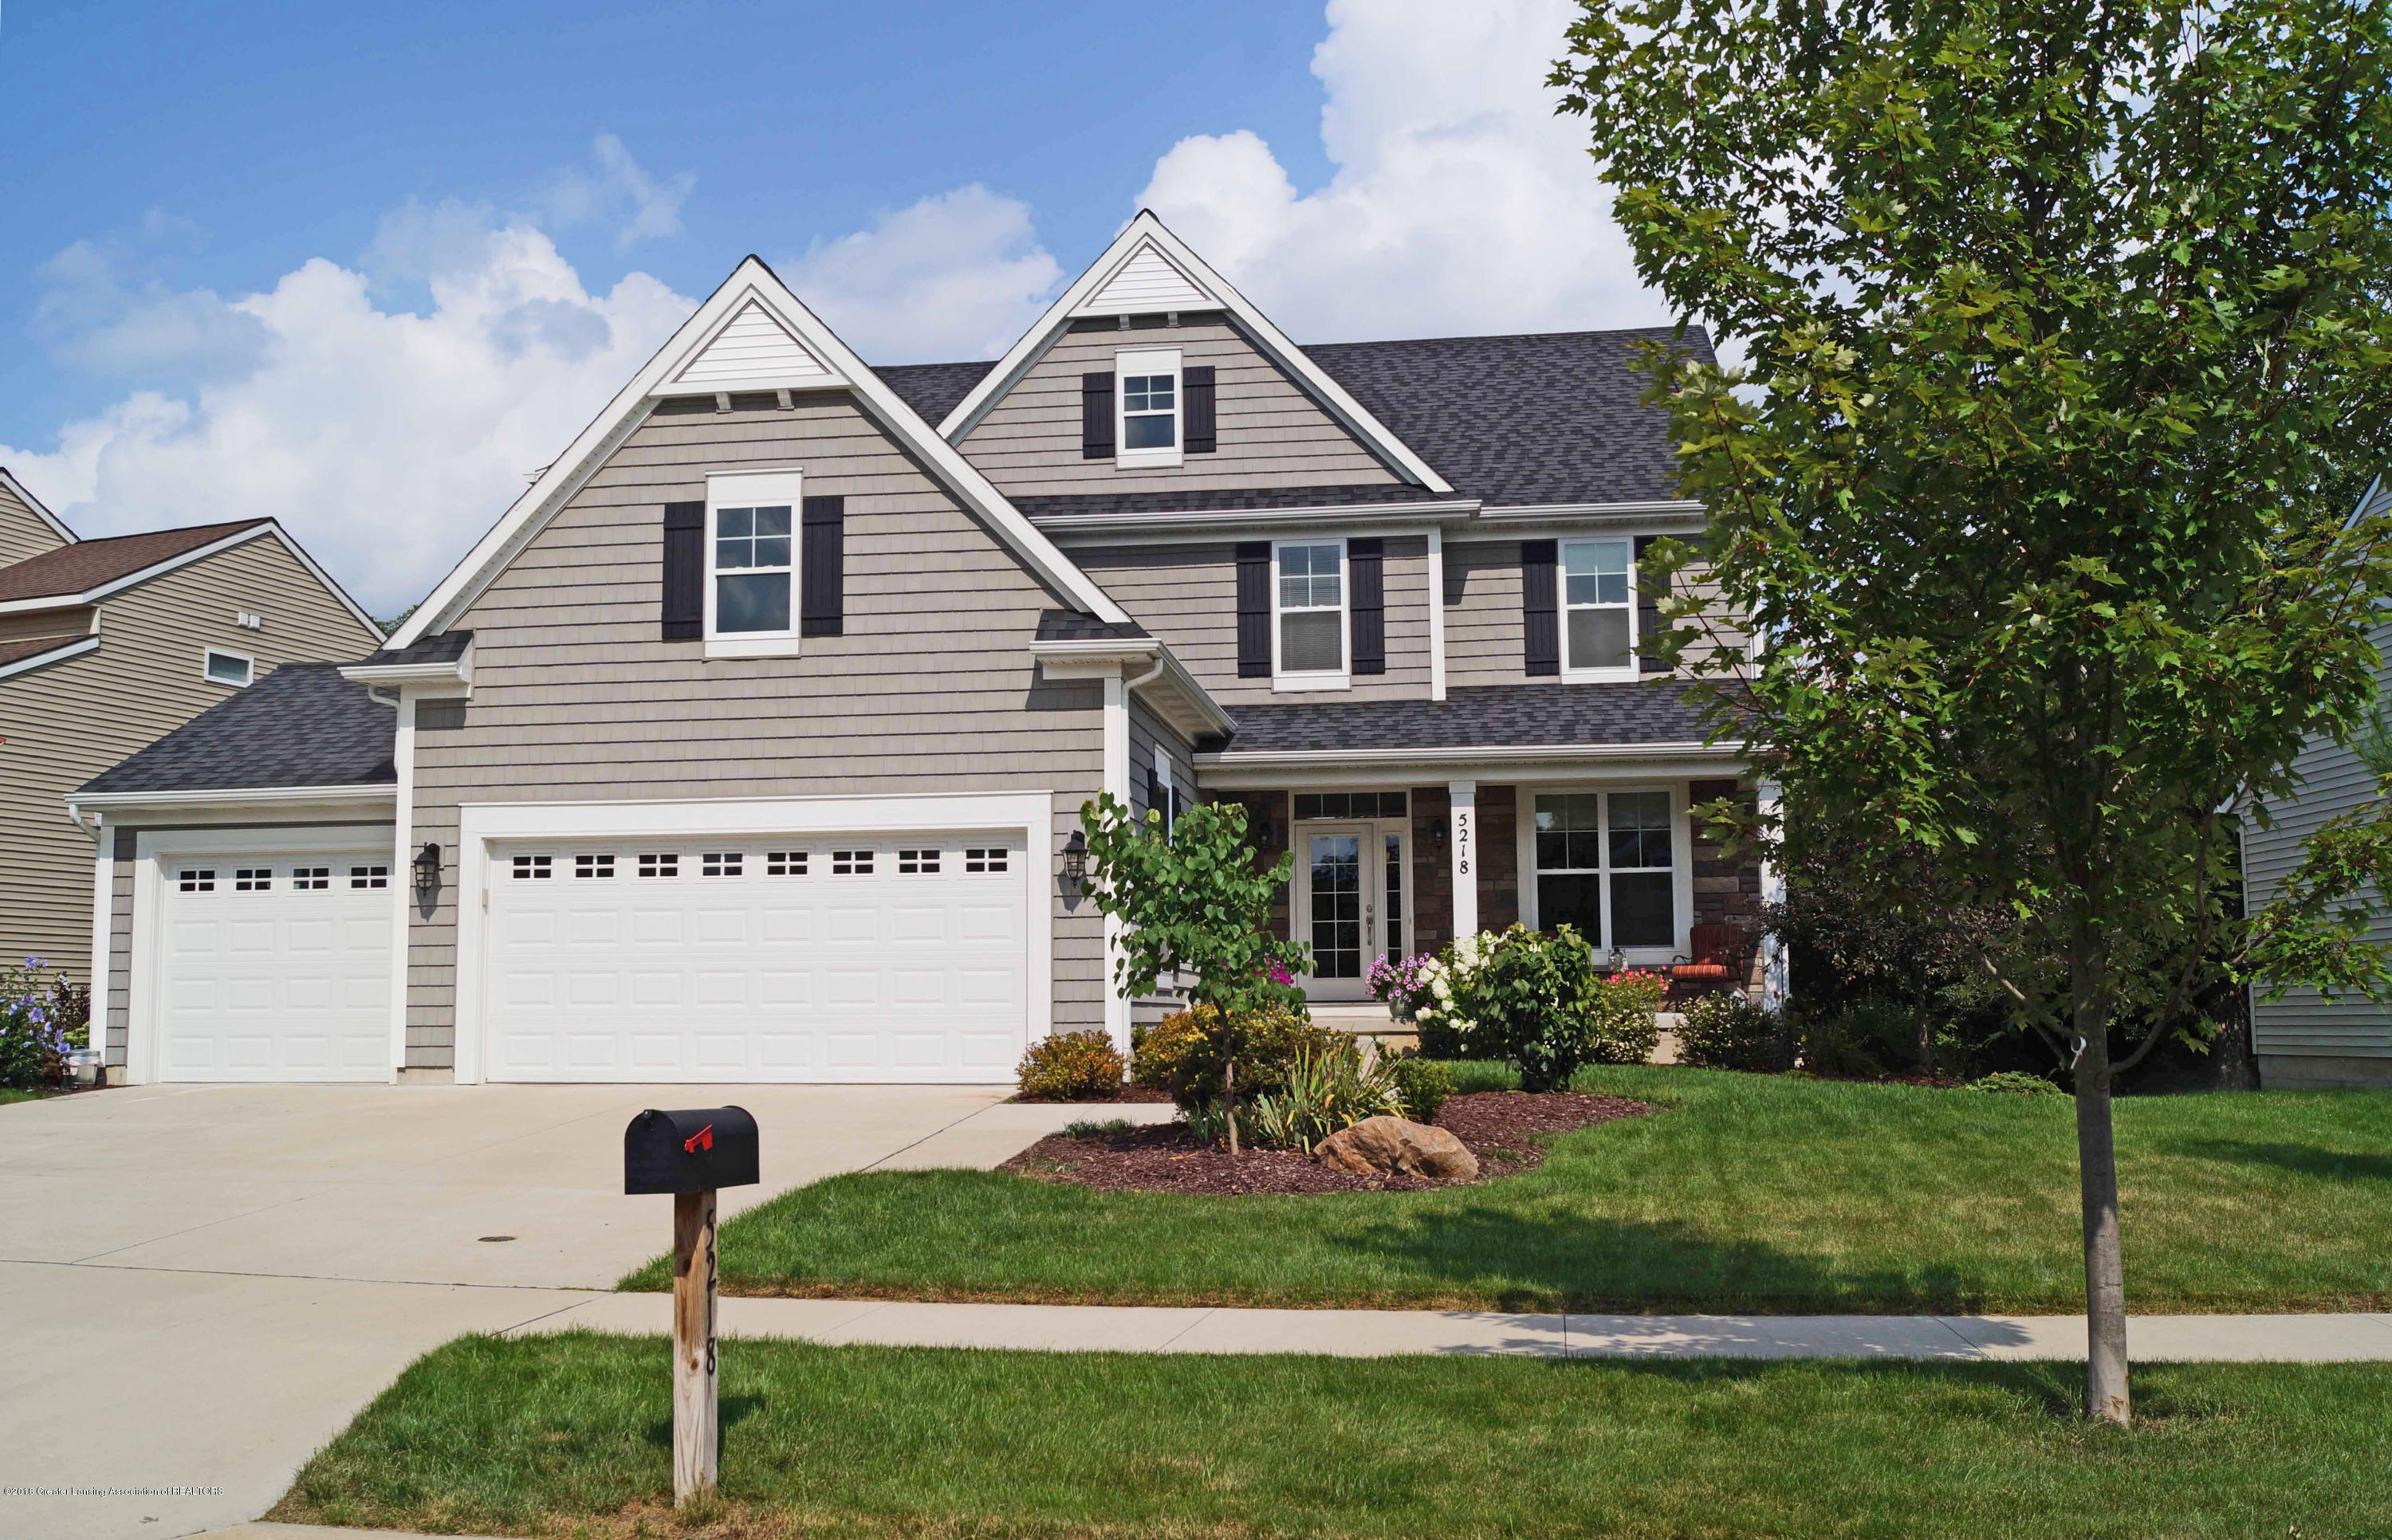 5218 Twinging Drive - FRONT - 1